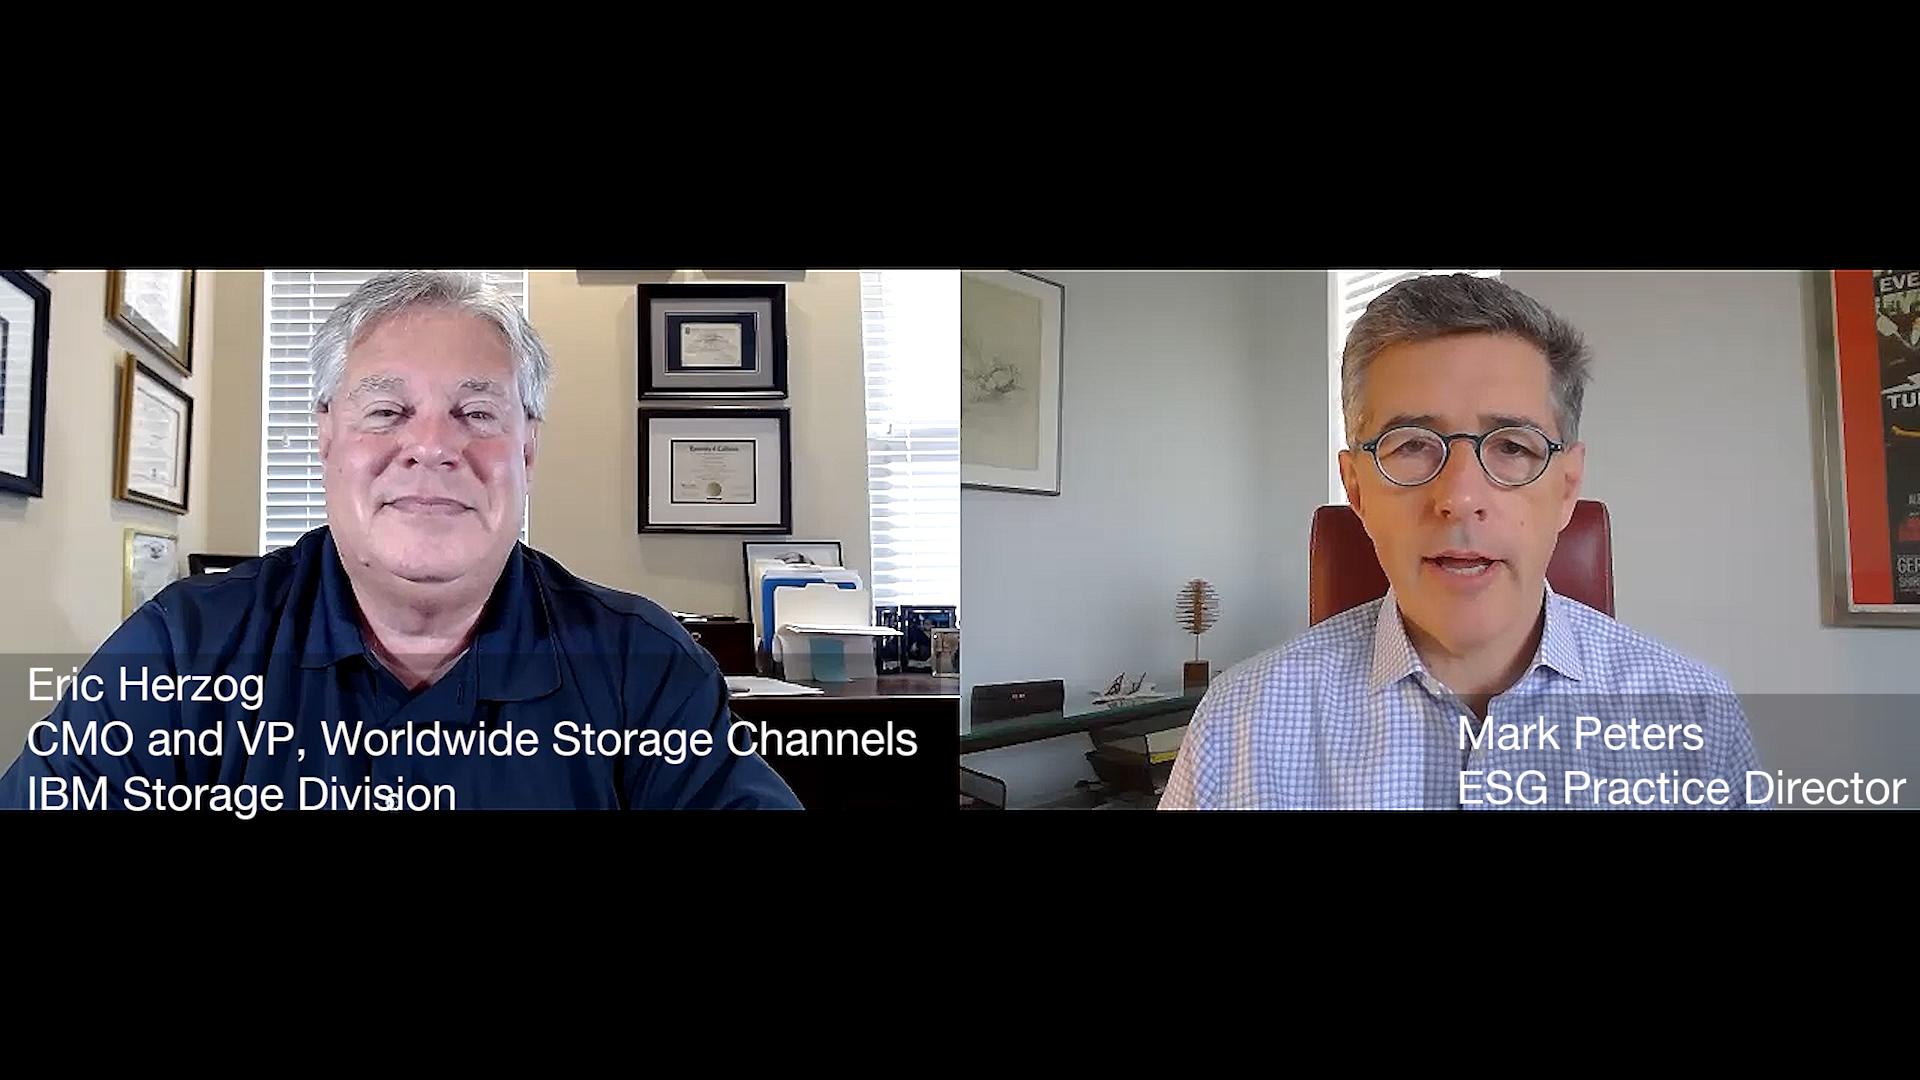 Marketing in Challenging Times - In Conversation with Eric Herzog of IBM  (Video)